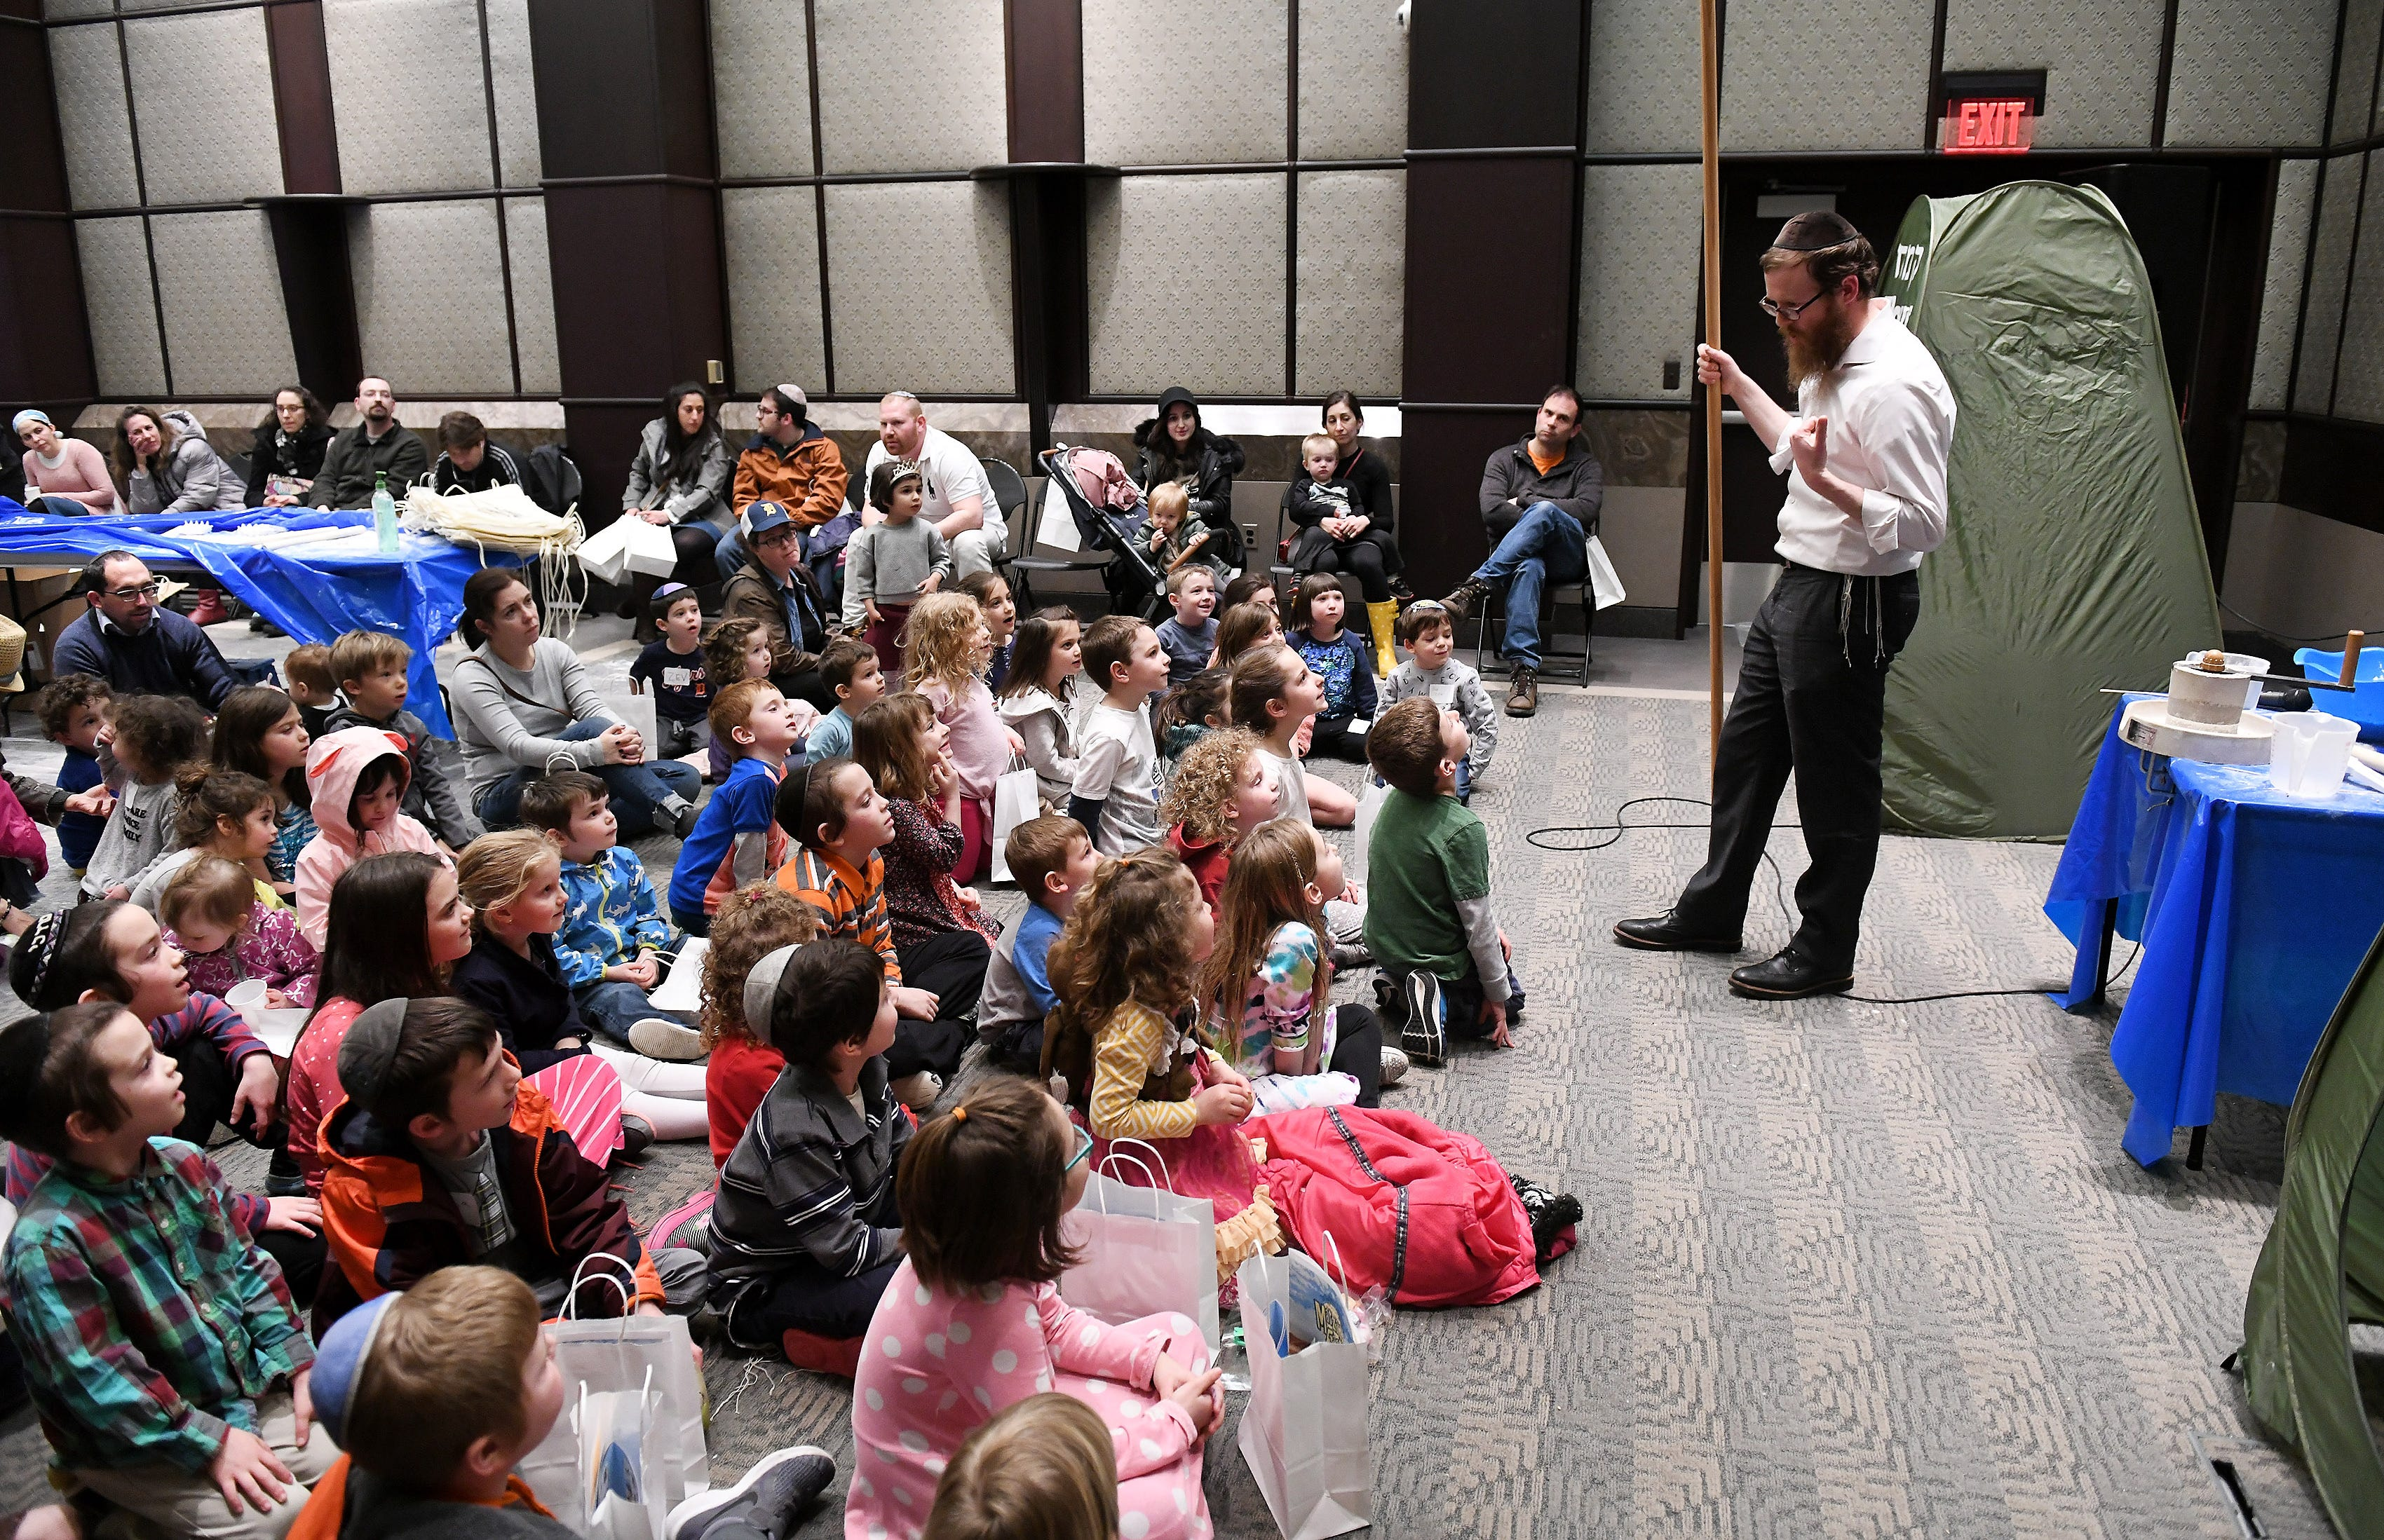 Rabbi Shneur Silberberg of Bais Chabad of West Bloomfield teaches children about how matzah is made at the Matzah Factory Extravaganza at the Jewish Community Center in West Bloomfield.